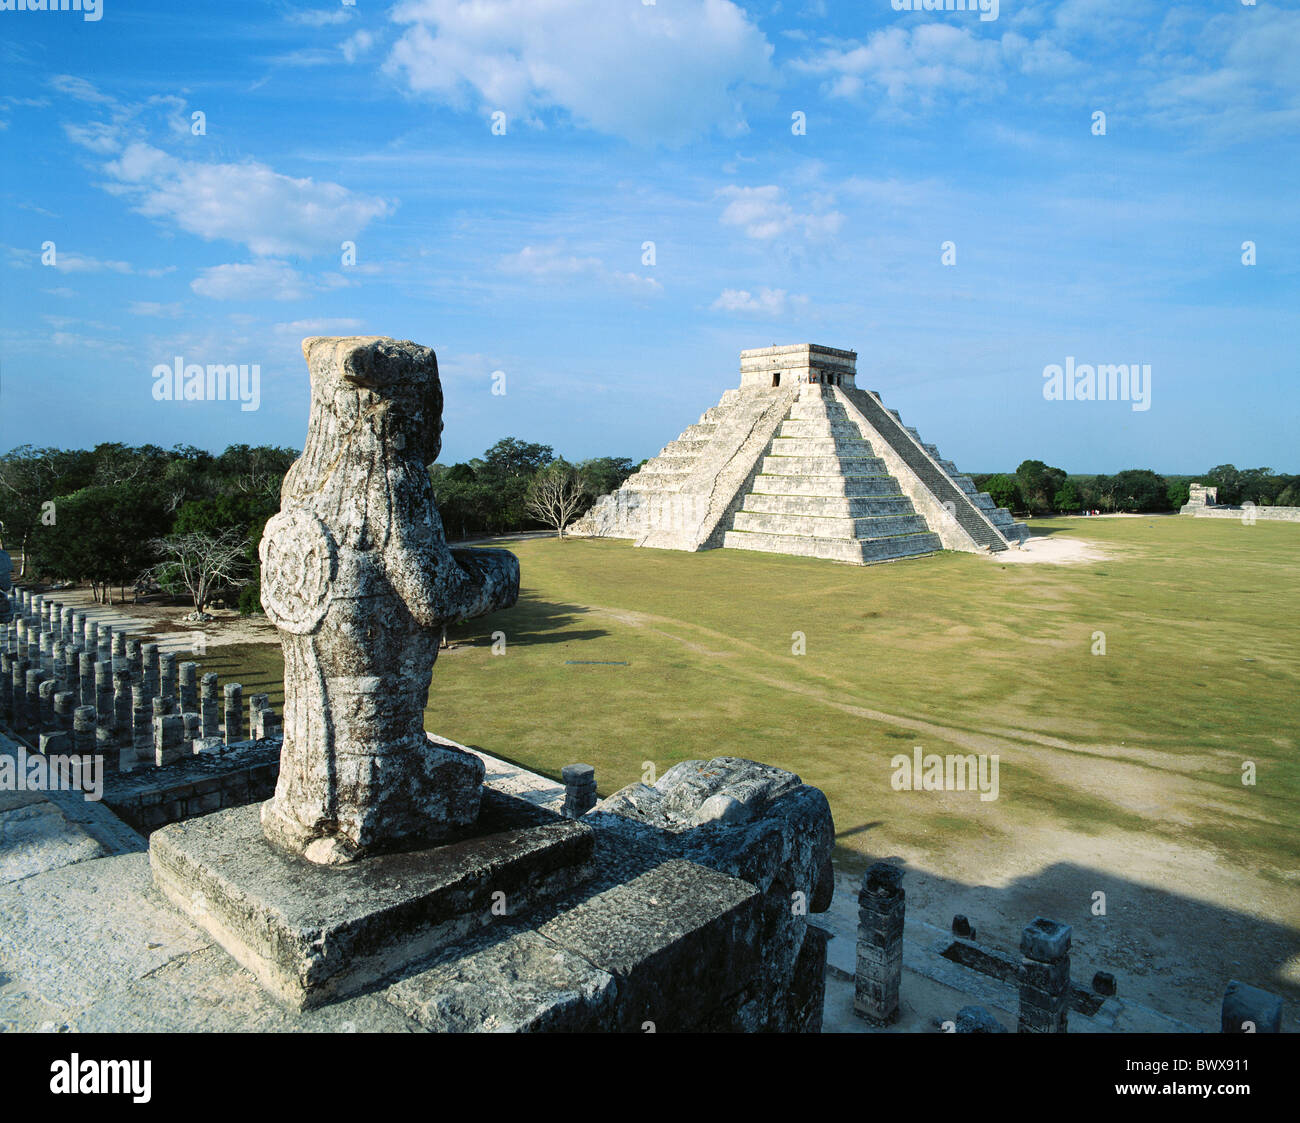 An overview of the mysterious temple and pyramids of the maya in mexico